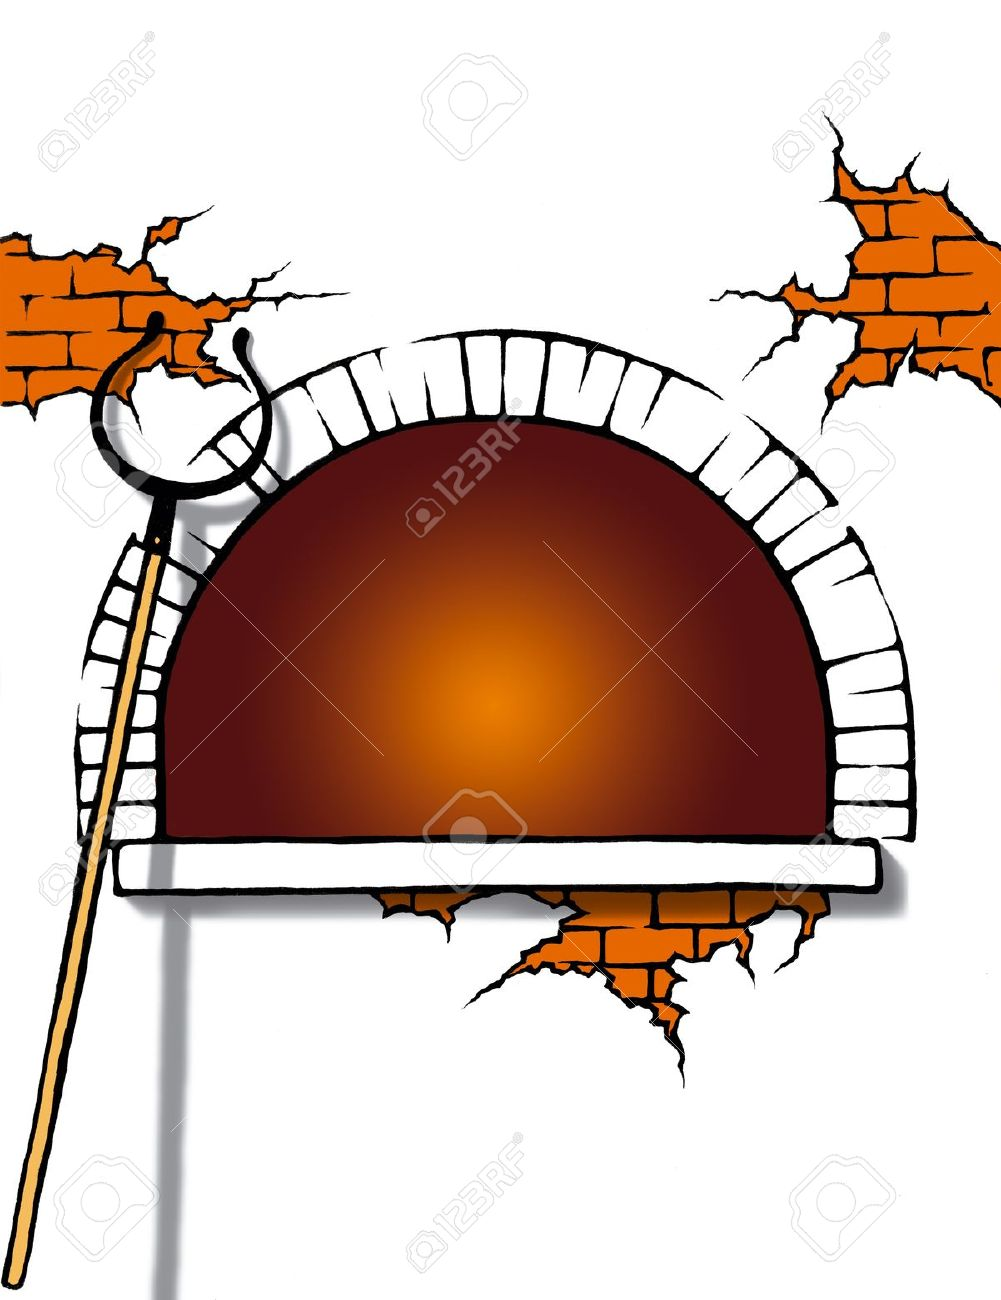 Cartoon Illustration Of A Stove With White Background Stock Photo.